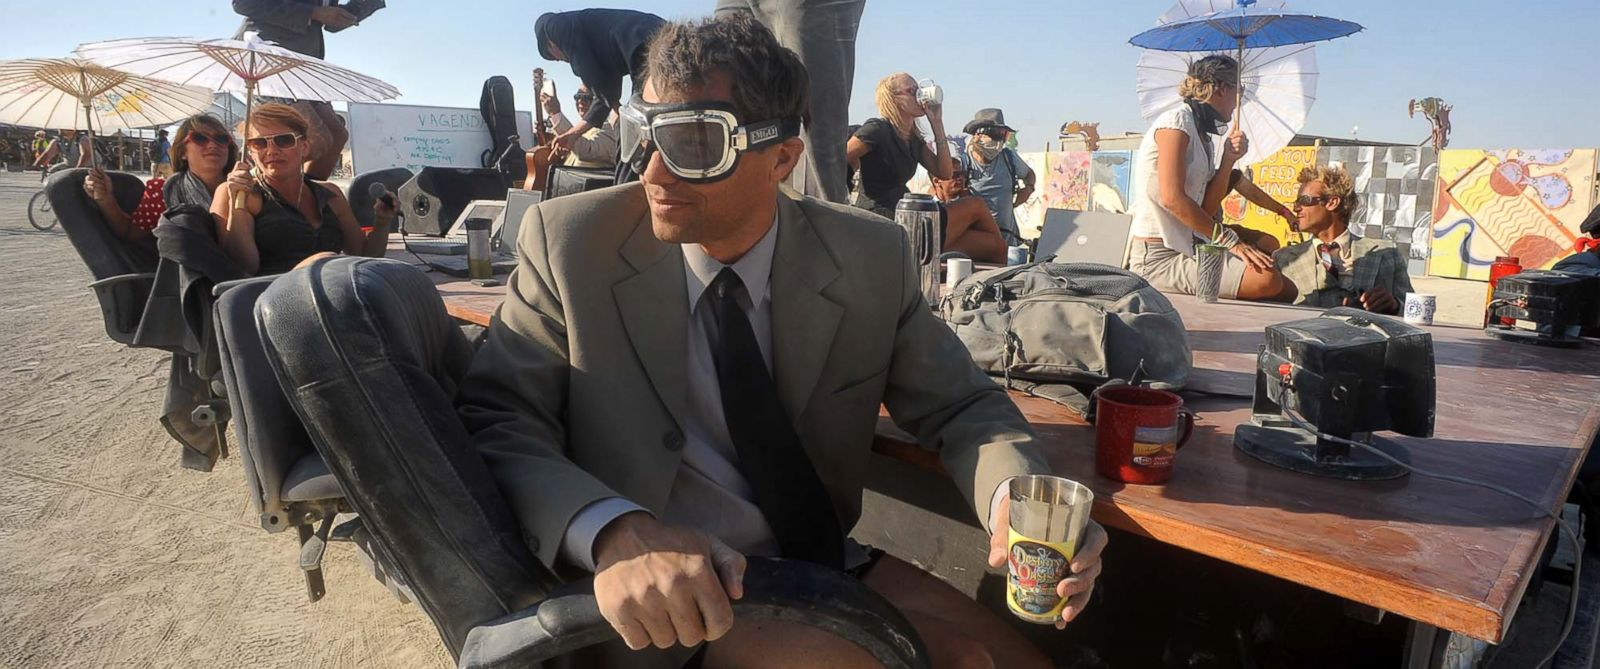 "PHOTO: A ""Mobile Board Room"" moves along the playa at the Burning Man festival in Gerlach, Nev., Aug. 29, 2013."